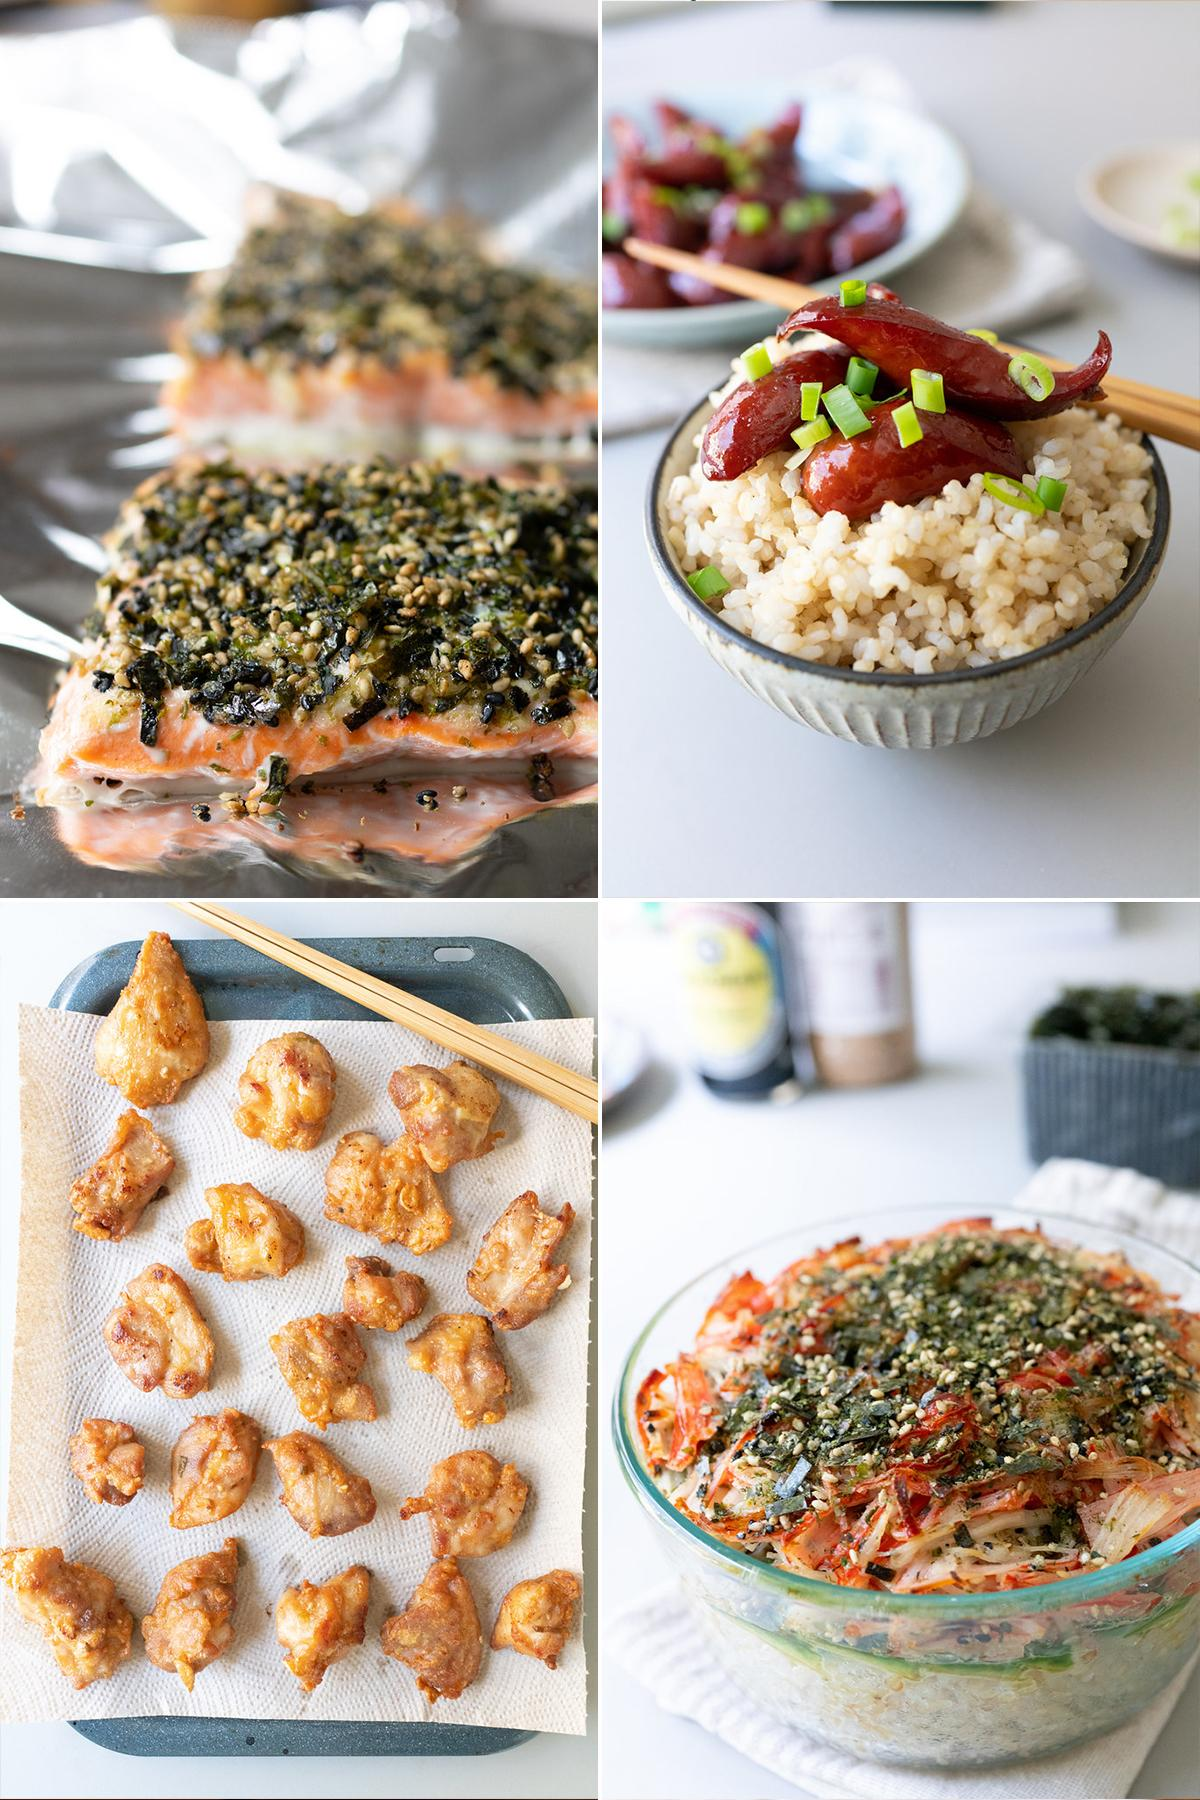 Collage of local dishes. Clockwise from top-left: furikake salmon, shoyu hot dogs, sushi bake, and mochiko chicken.